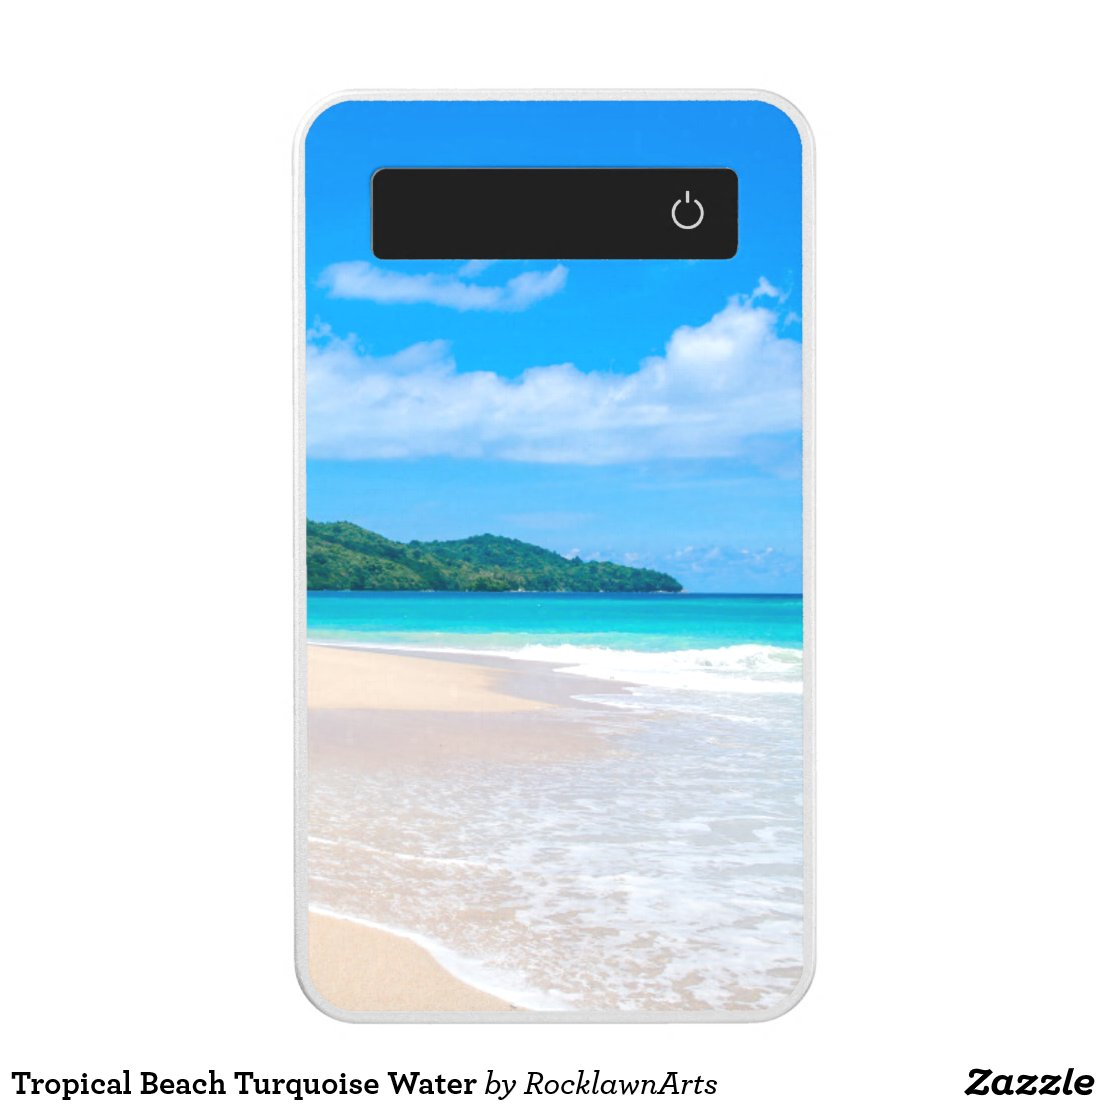 Tropical Island Beach Turquoise Water Power Bank